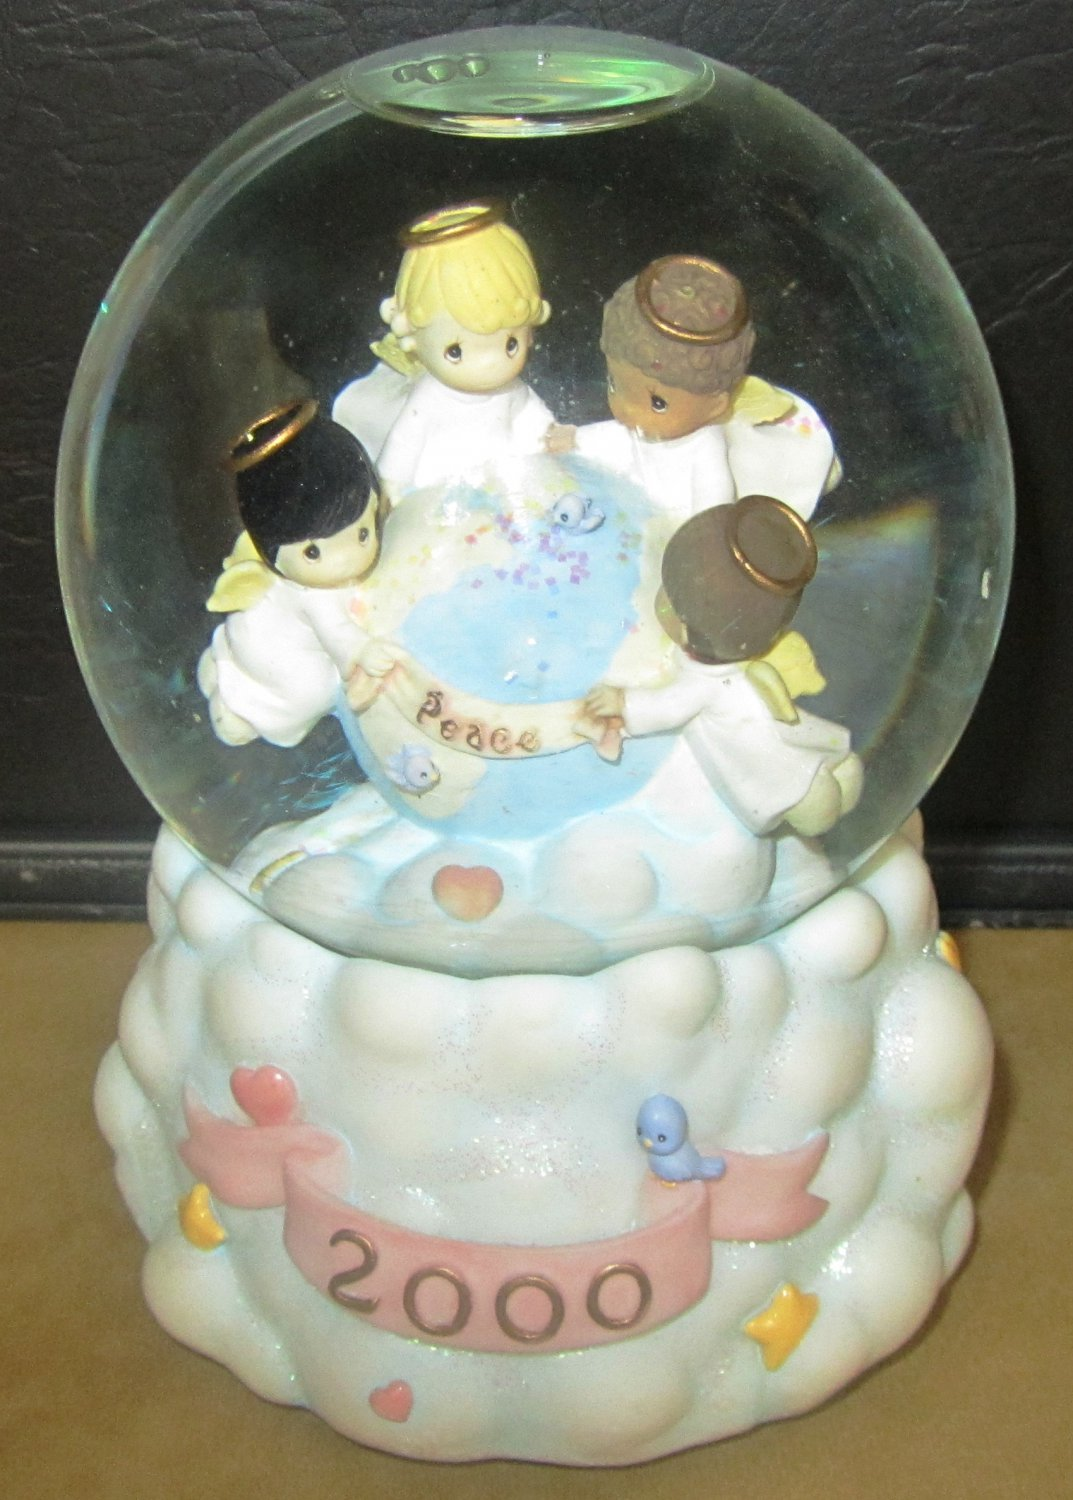 CHRISTMAS 2000 SNOW GLOBE MUSIC BOX ENESCO 'I'D LIKE TO TEACH THE WORLD TO SING'